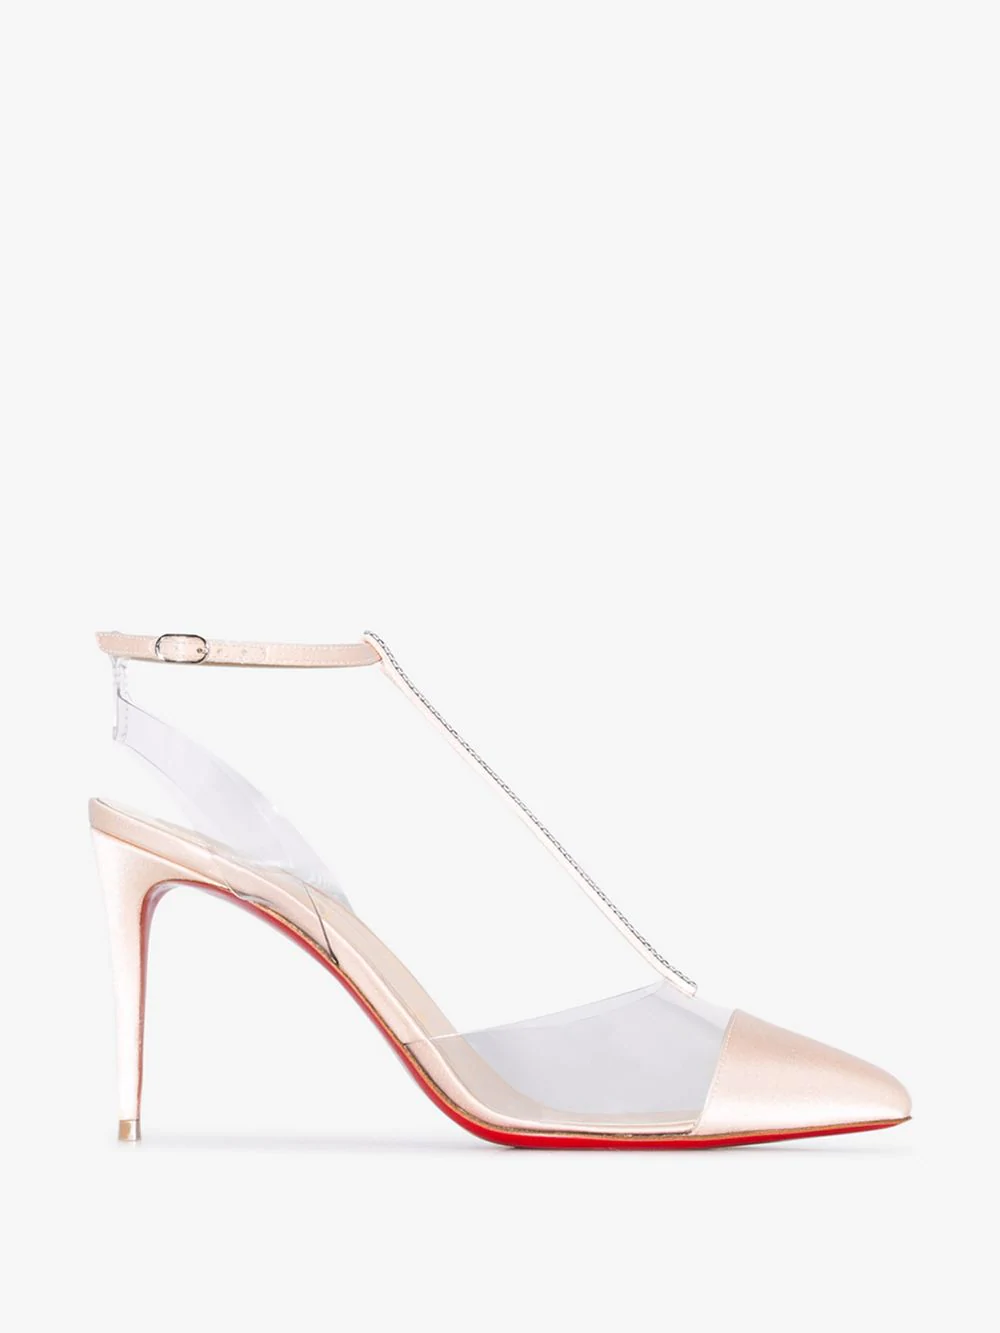 5c89b8b7c2a7 Christian Louboutin Nosy Strass Red Sole Pumps In Neutrals